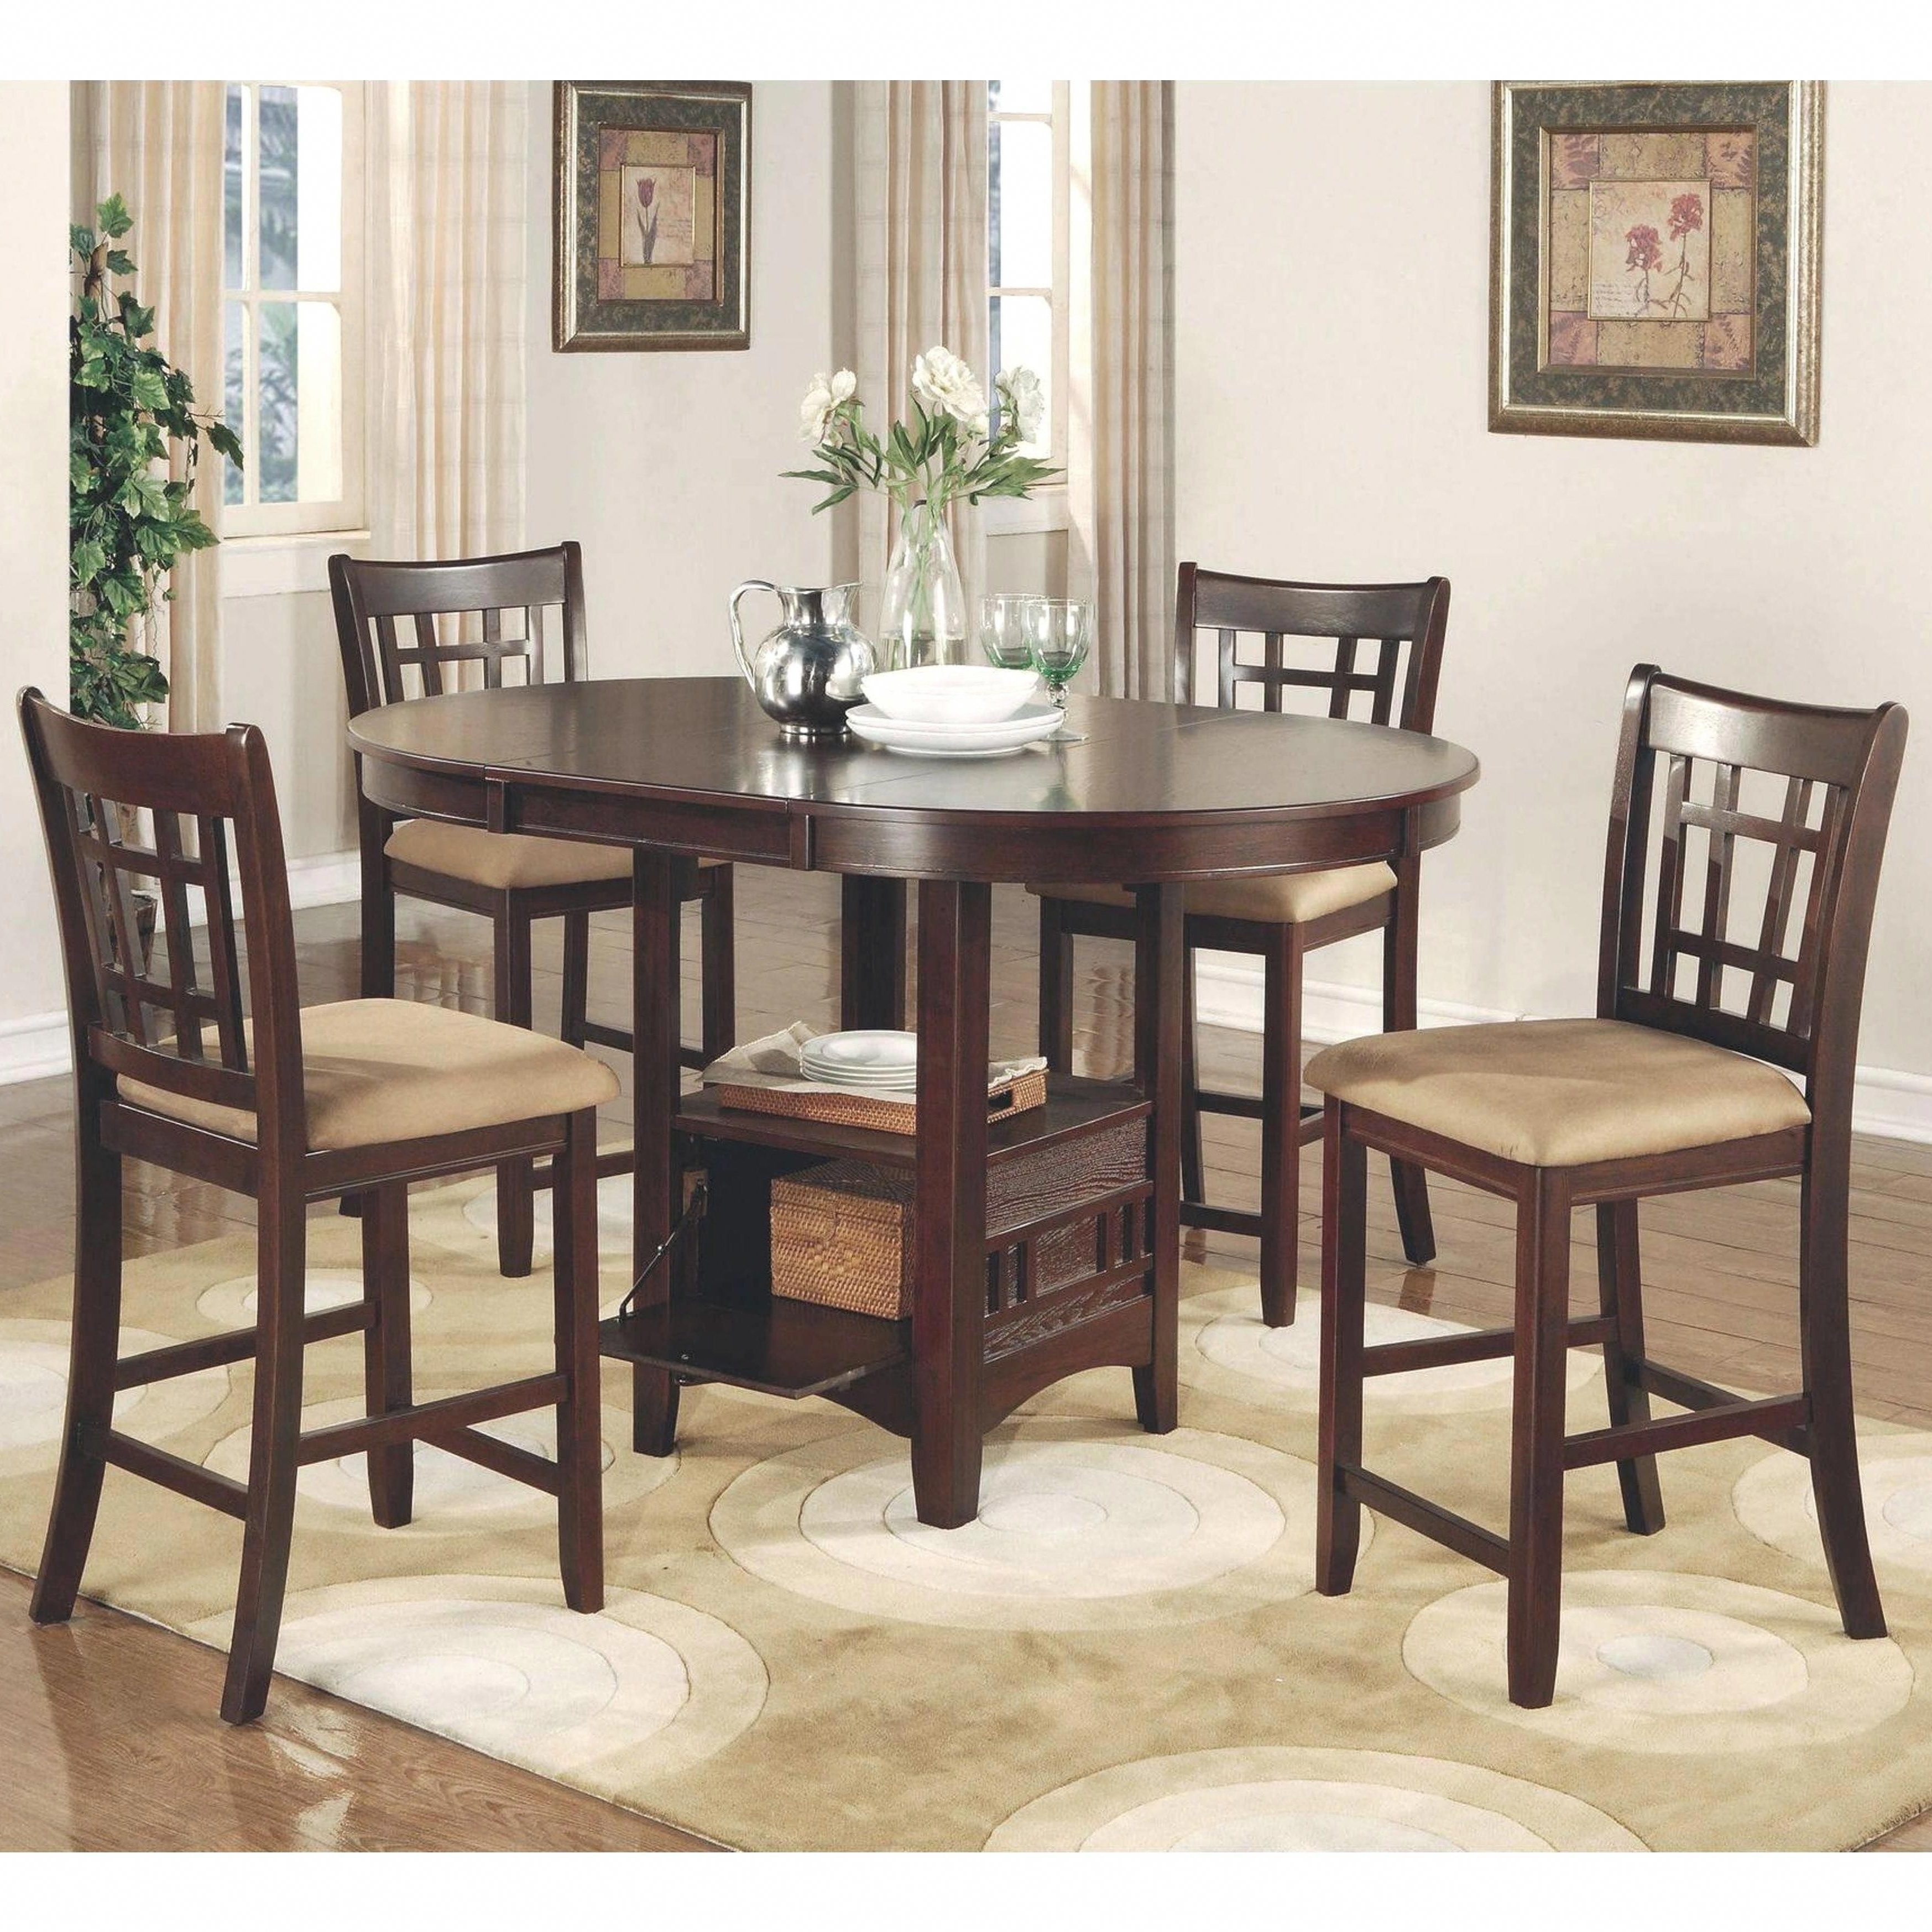 Current Azalea Warm Brown Counter Height Dining Set (1 Table – 6 Stools For Craftsman 7 Piece Rectangle Extension Dining Sets With Uph Side Chairs (View 21 of 25)